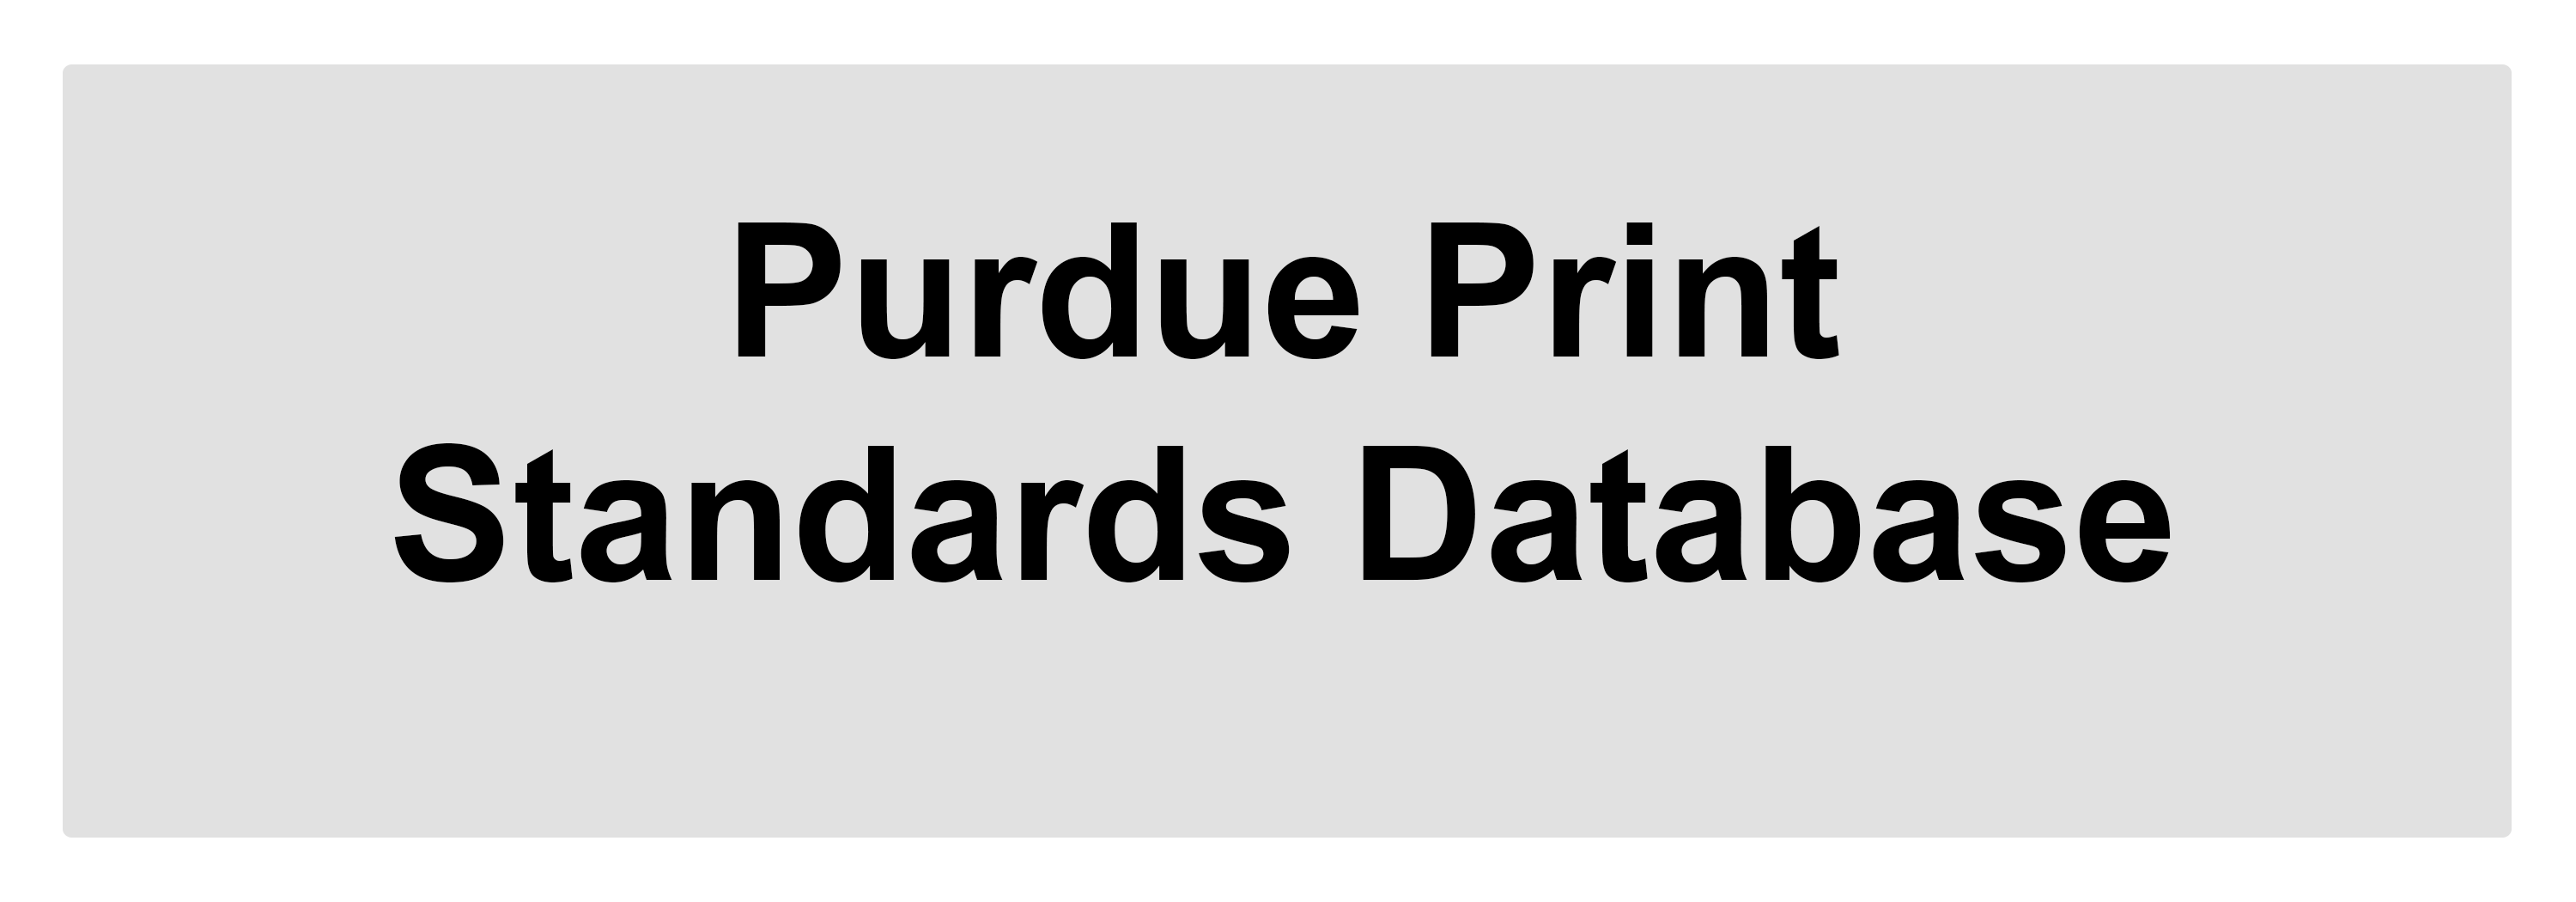 Purdue Print Standards Database, click to access database.